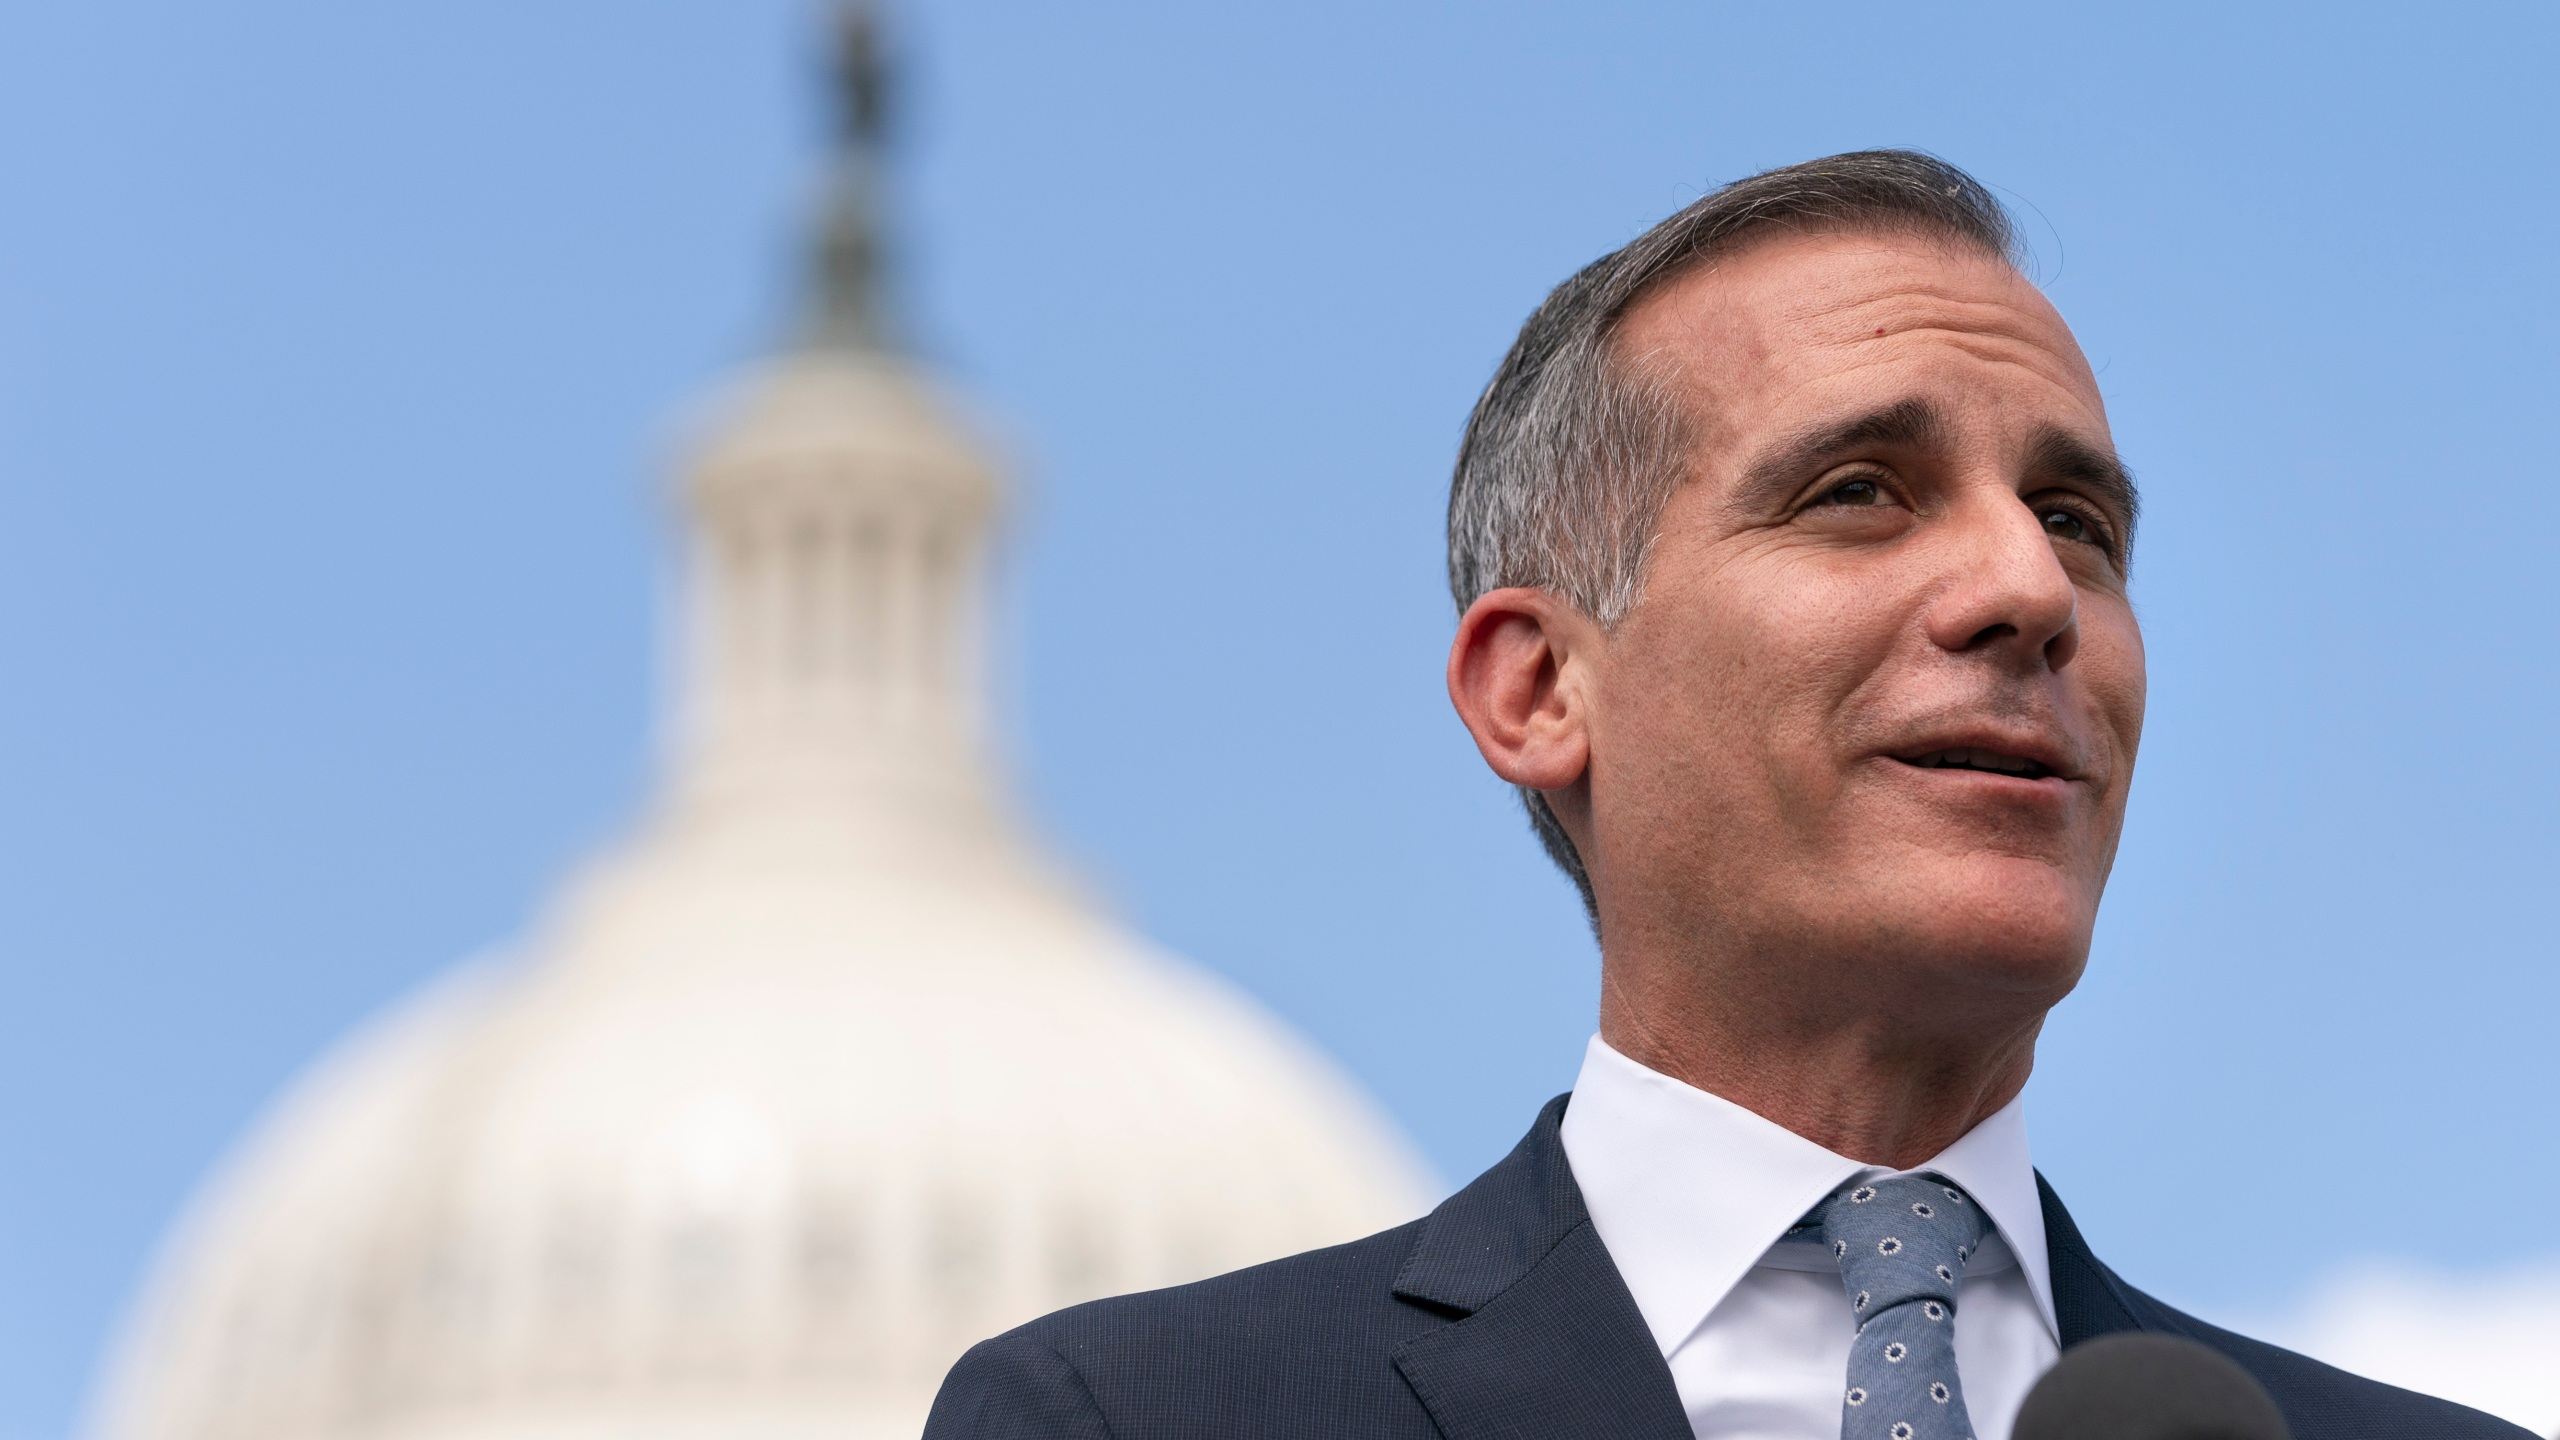 Los Angeles Mayor Eric Garcetti speaks during a news conference with House Transportation and Infrastructure Committee Chair Peter DeFazio on Capitol Hill in Washington on May 12, 2021. (Jacquelyn Martin / Associated Press)